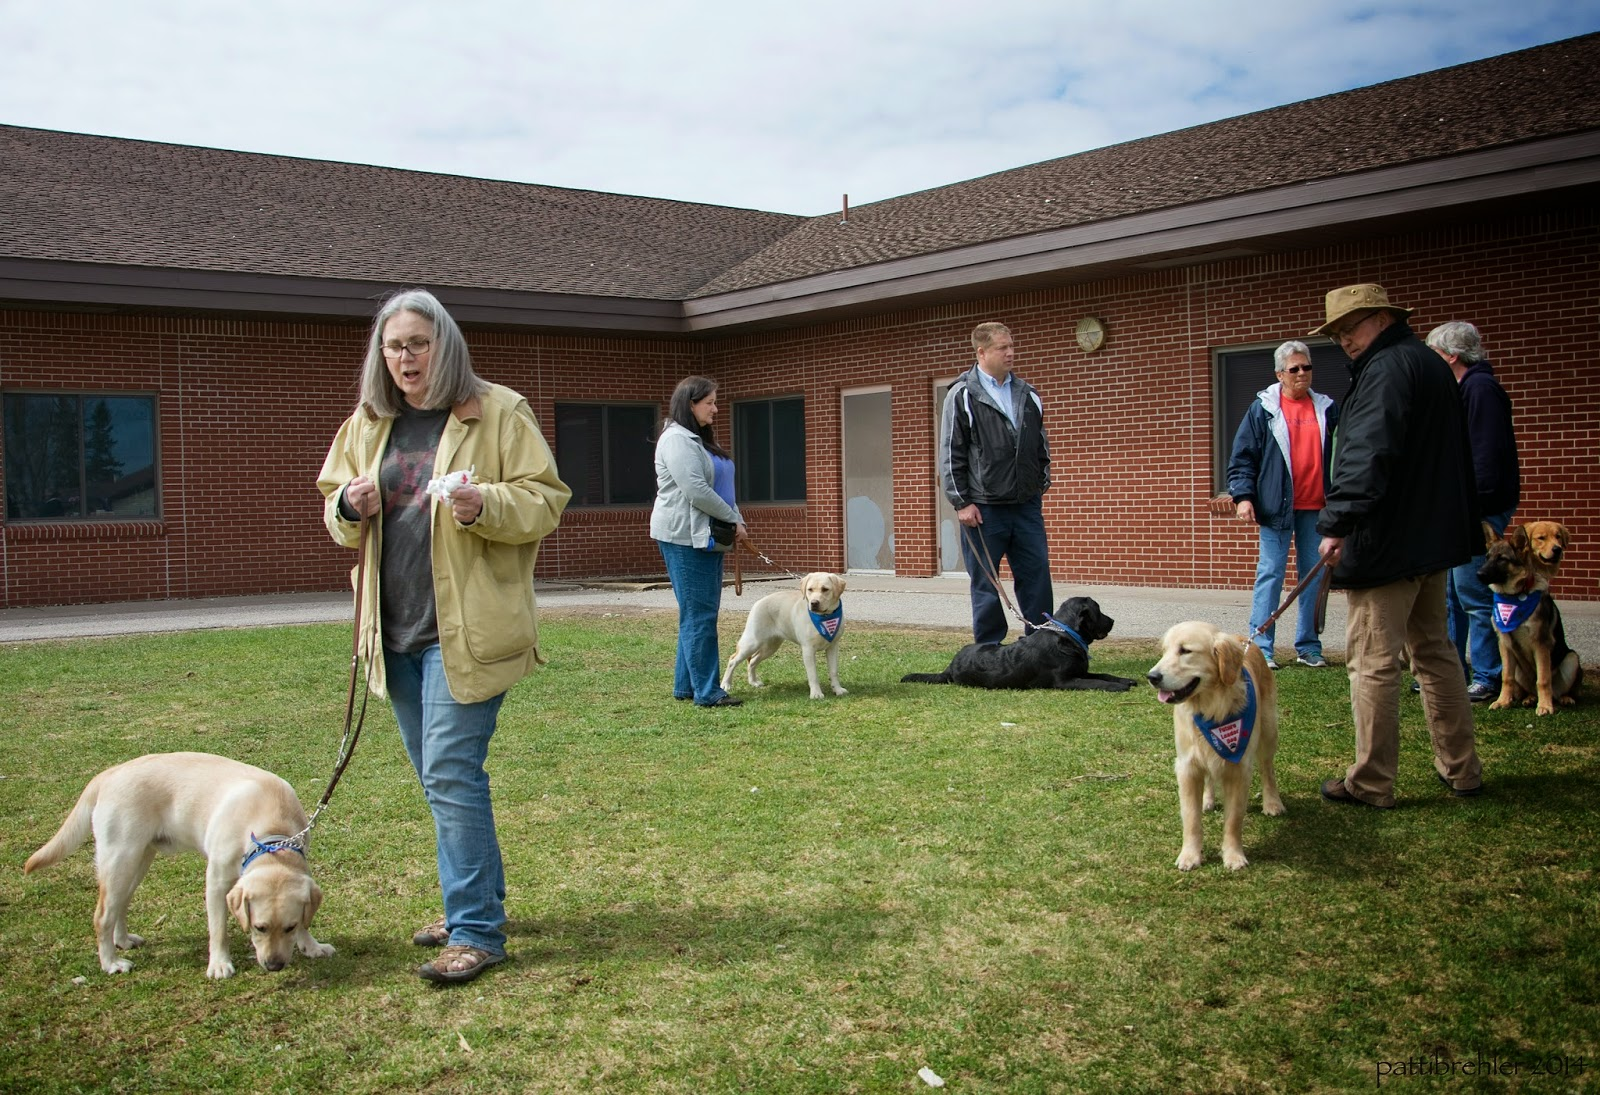 A group of four women and two men, and six future leader dogs ( two yellow labs, one black lab, two golden retrievers and one german shepherd) stand in an elementary school yard. The brick sided building is behind the group. Three of the dogs are standing, two are sitting and the black lab is lying down.